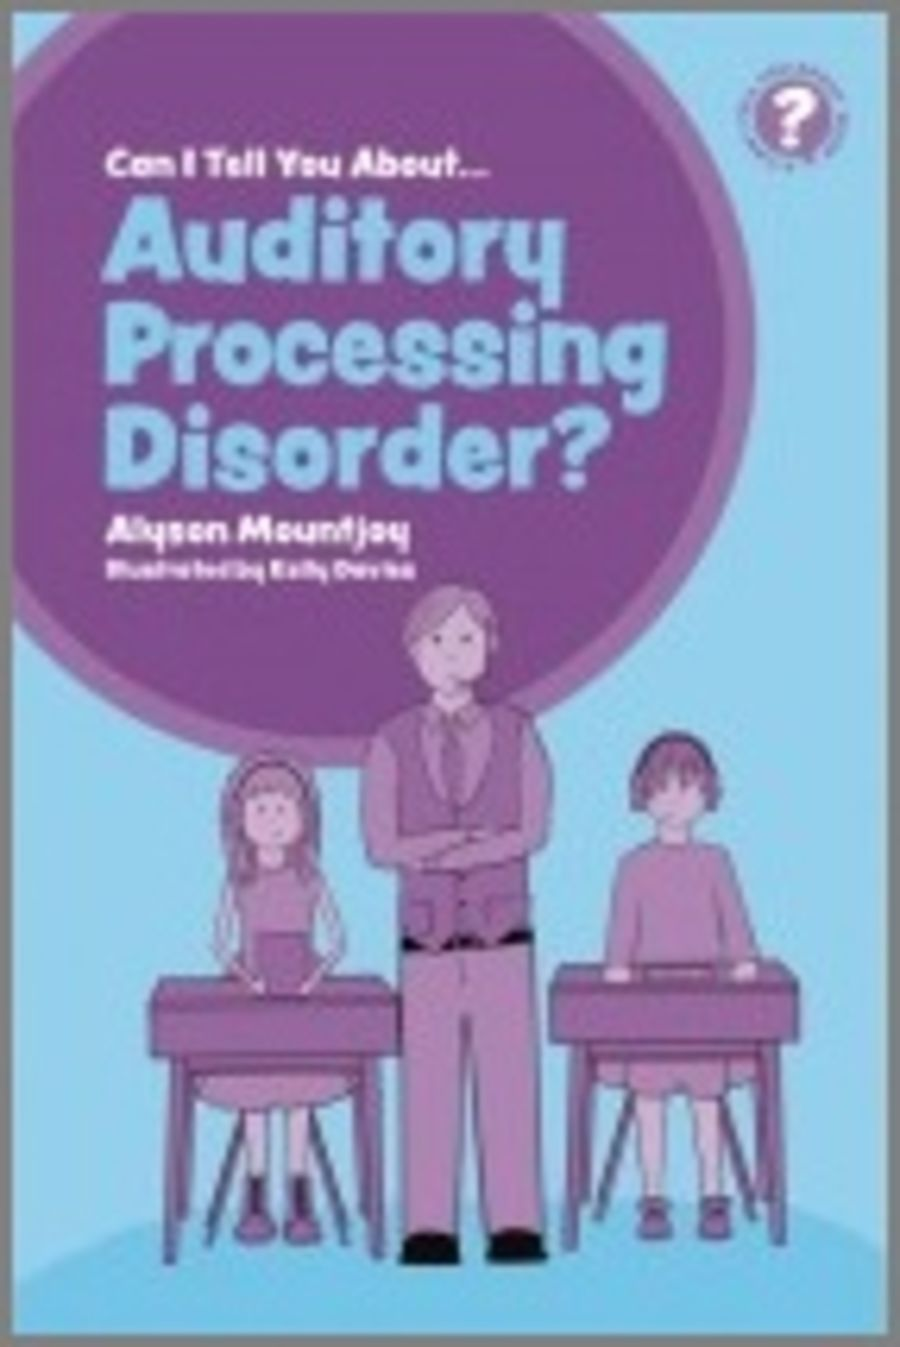 Can I Tell You About Auditory Processing Disorder?